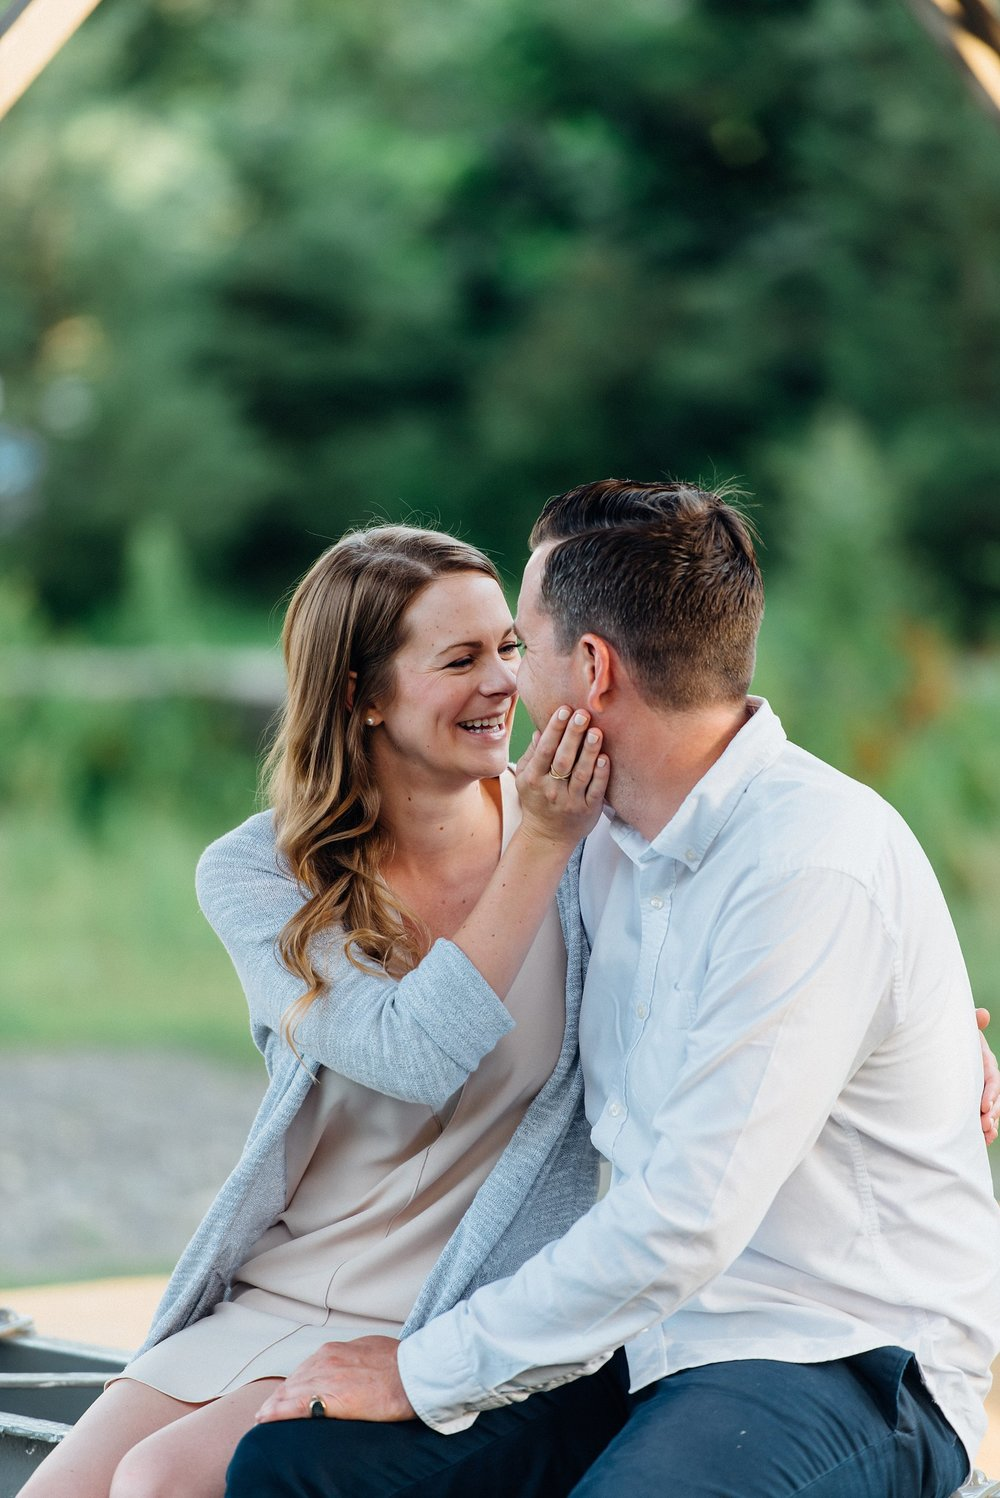 Ali and Batoul Photography - light, airy, indie documentary Ottawa wedding photographer_0314.jpg